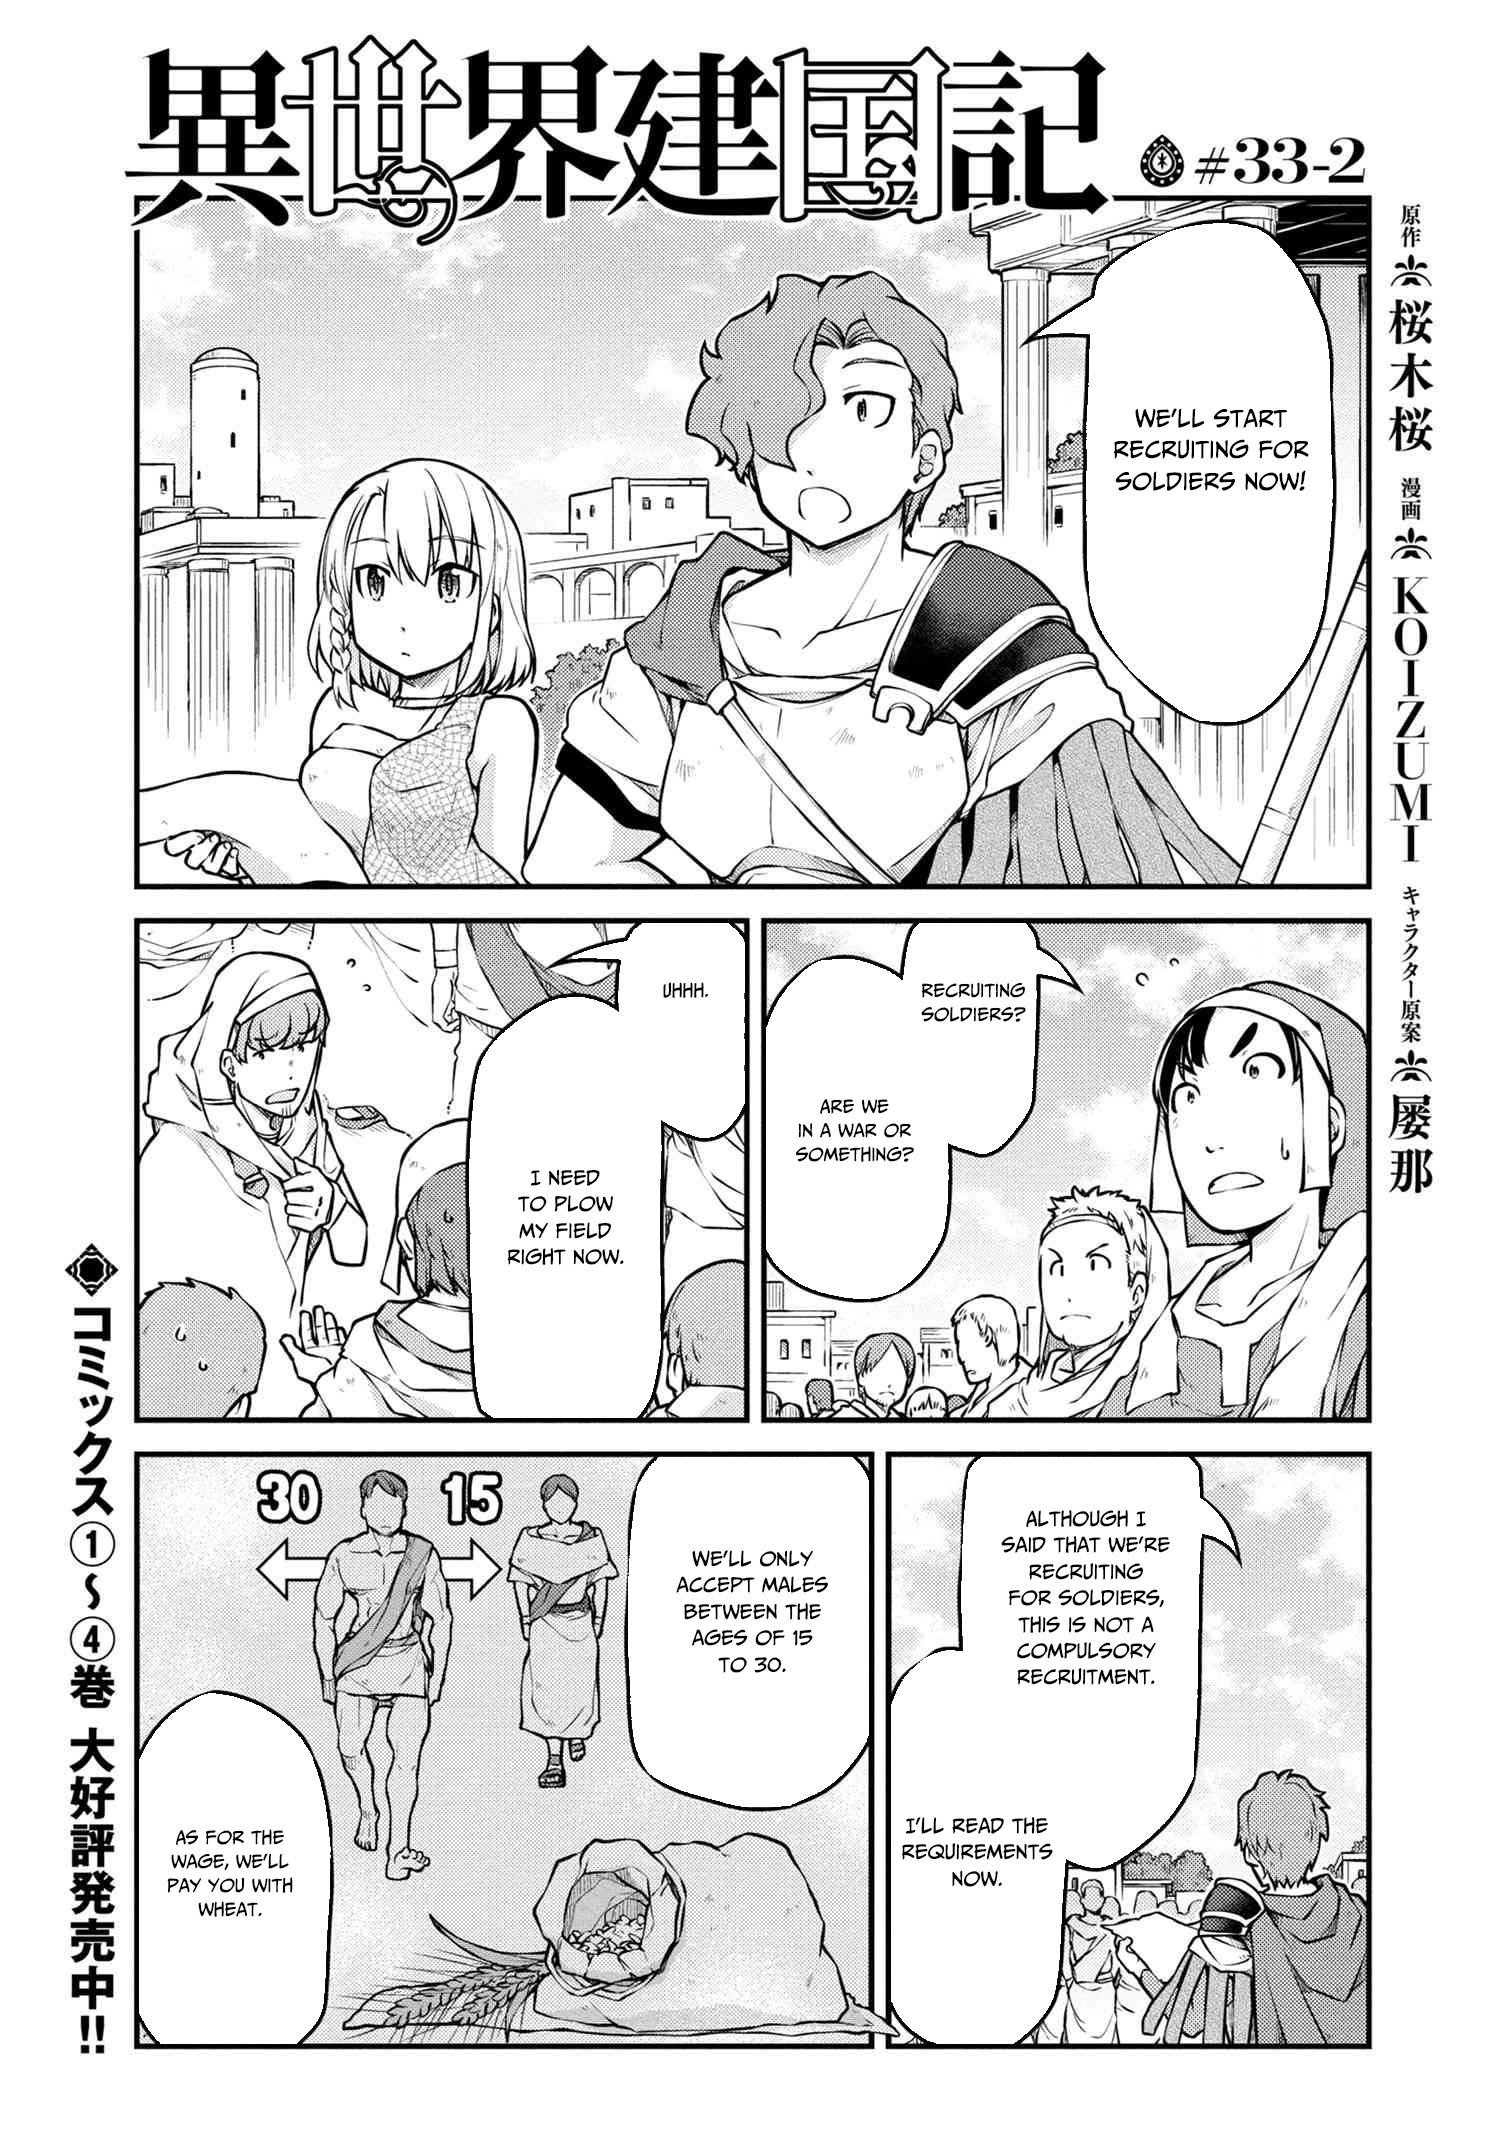 Manga Otherworld Nation Founding Chronicles - Chapter 33.2 Page 2